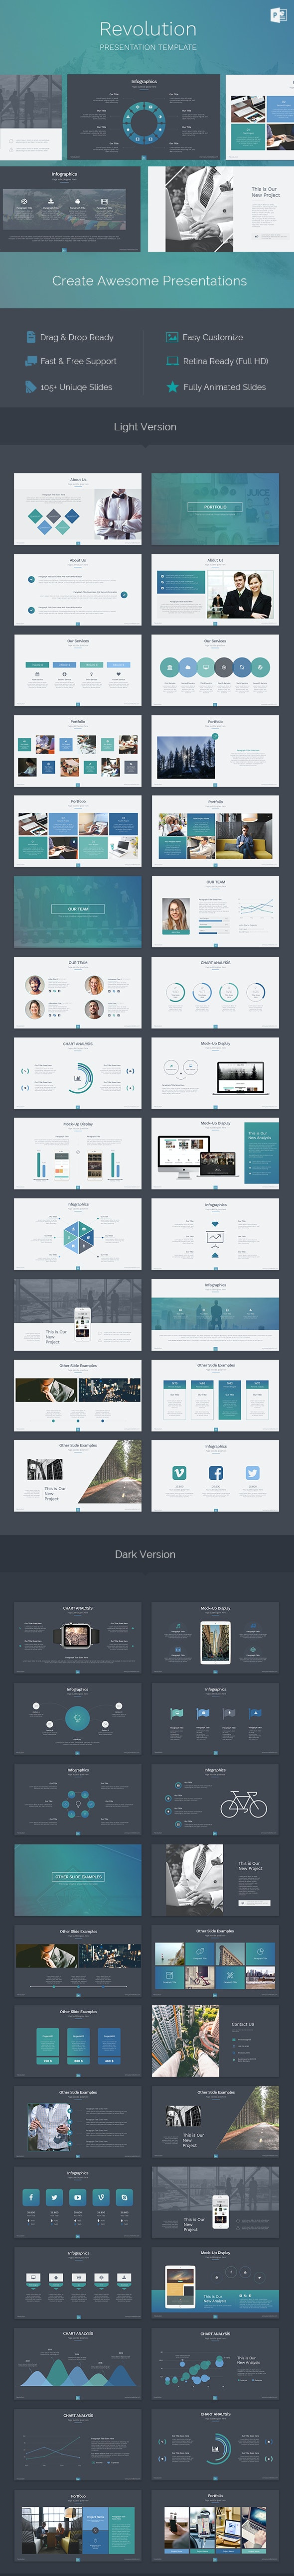 Revolution - Creative Powerpoint Template - PowerPoint Templates Presentation Templates